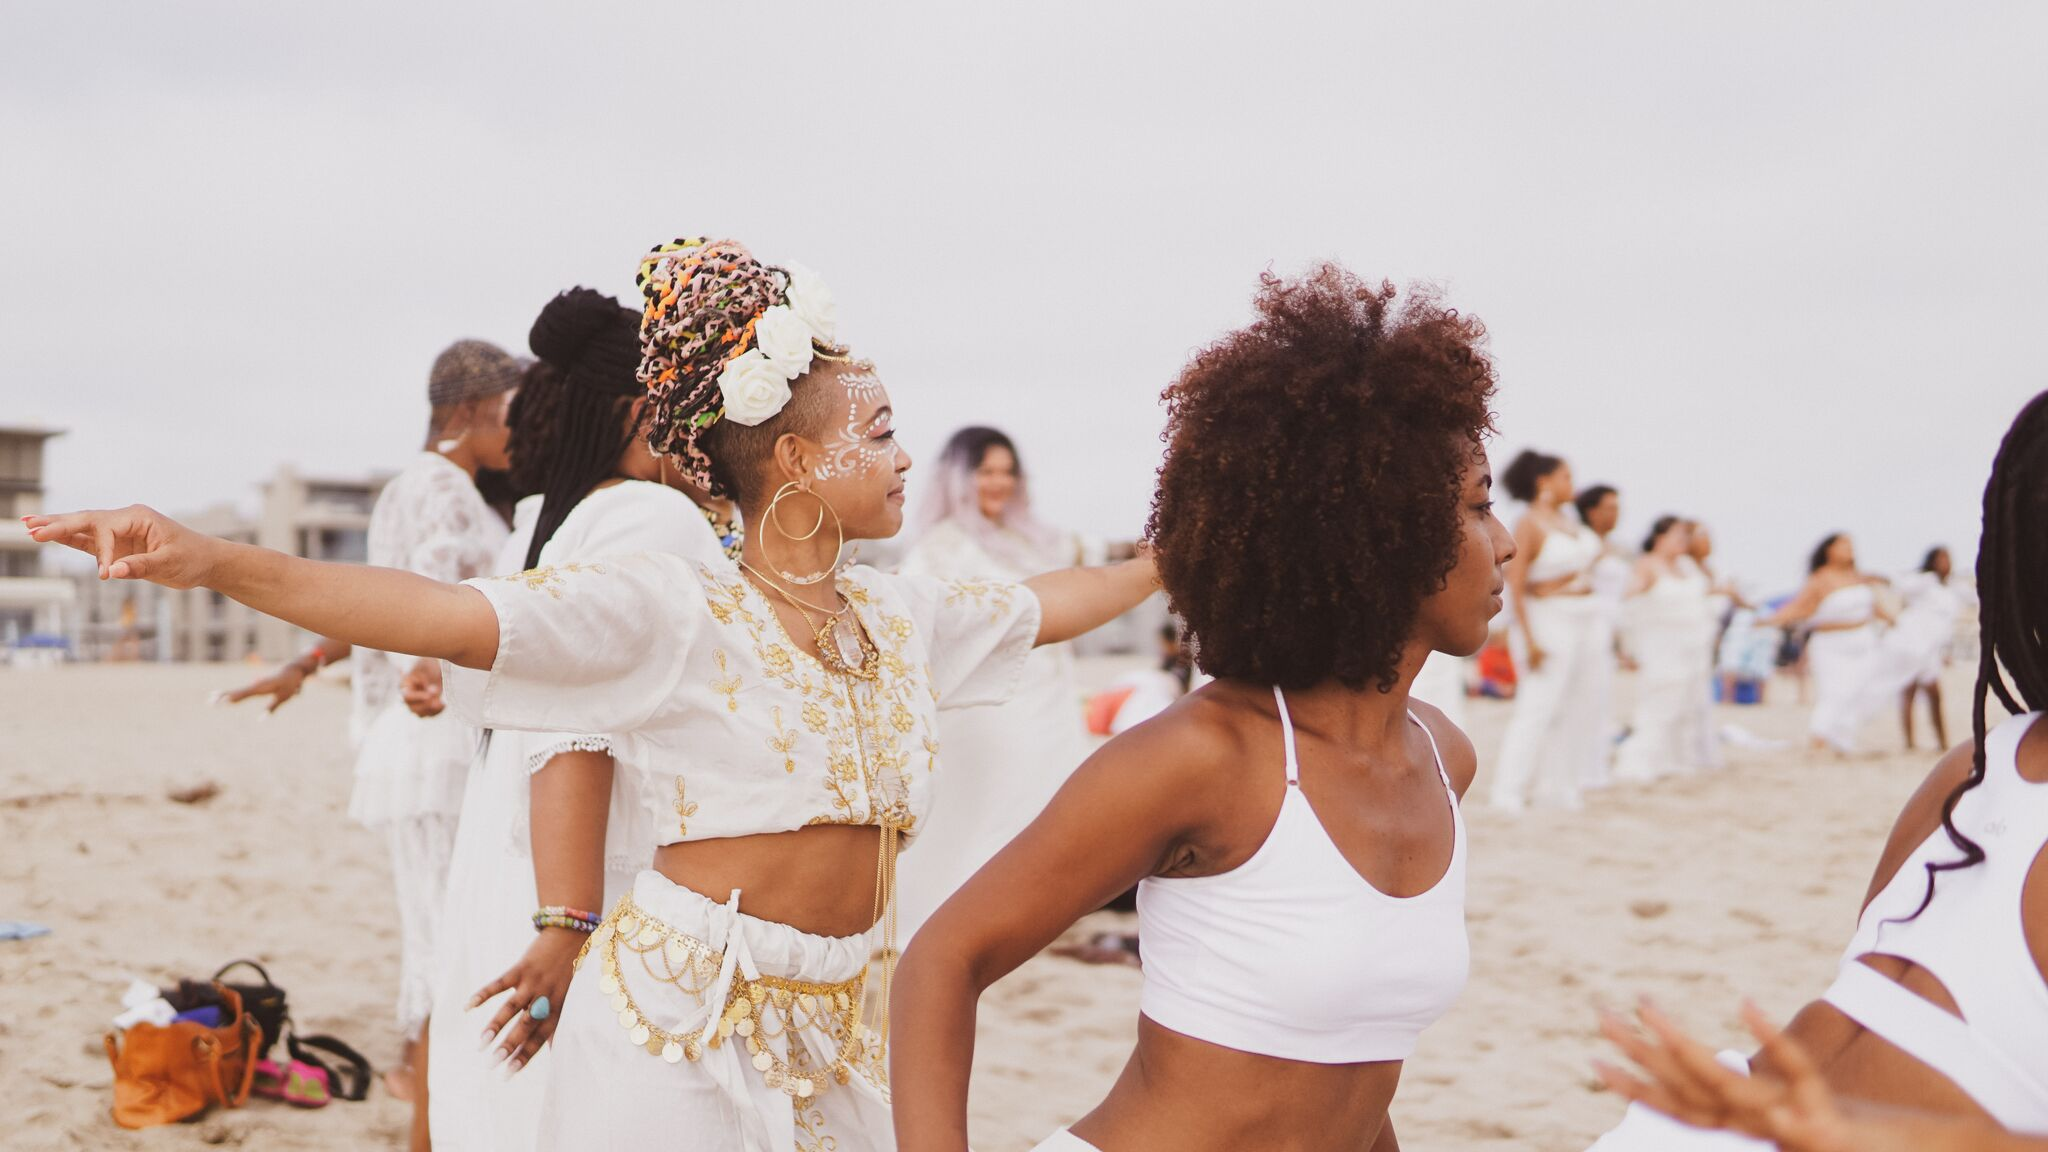 Goddess Glo Up Beach Retreat Los Angeles, CA | July 28-29,2018